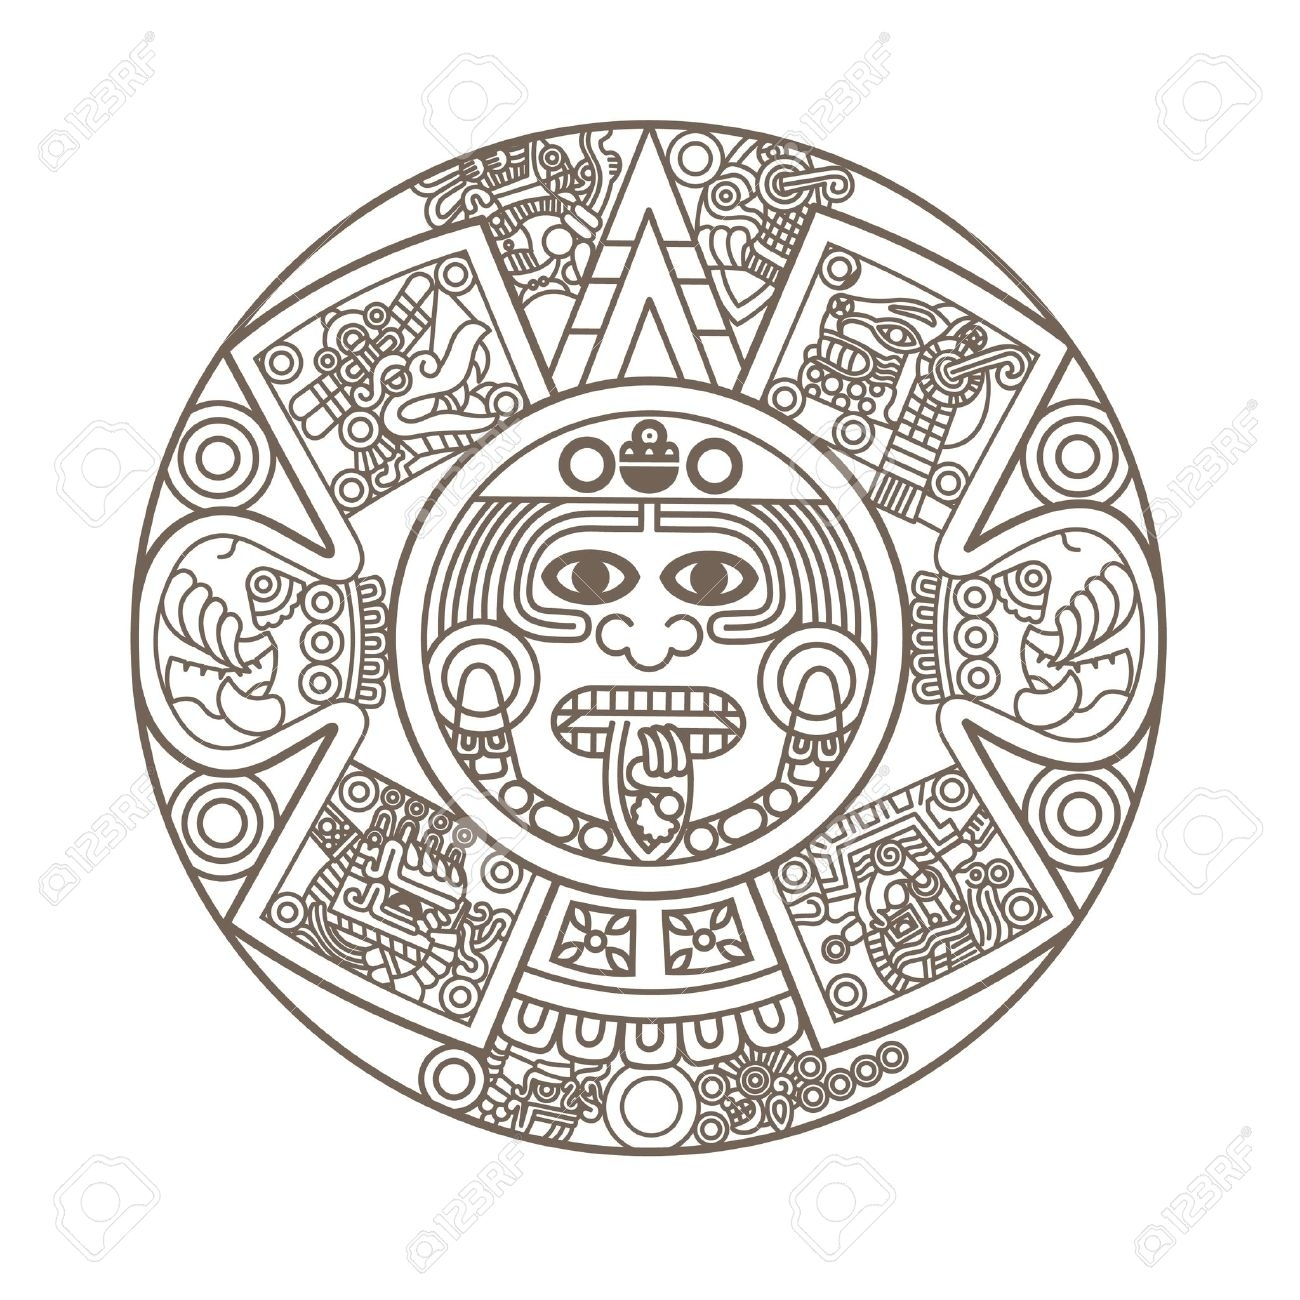 Stylized Aztec Calendar In Gold Color, Vector Illustration Royalty within Aztec Calendar Symbols And Meanings